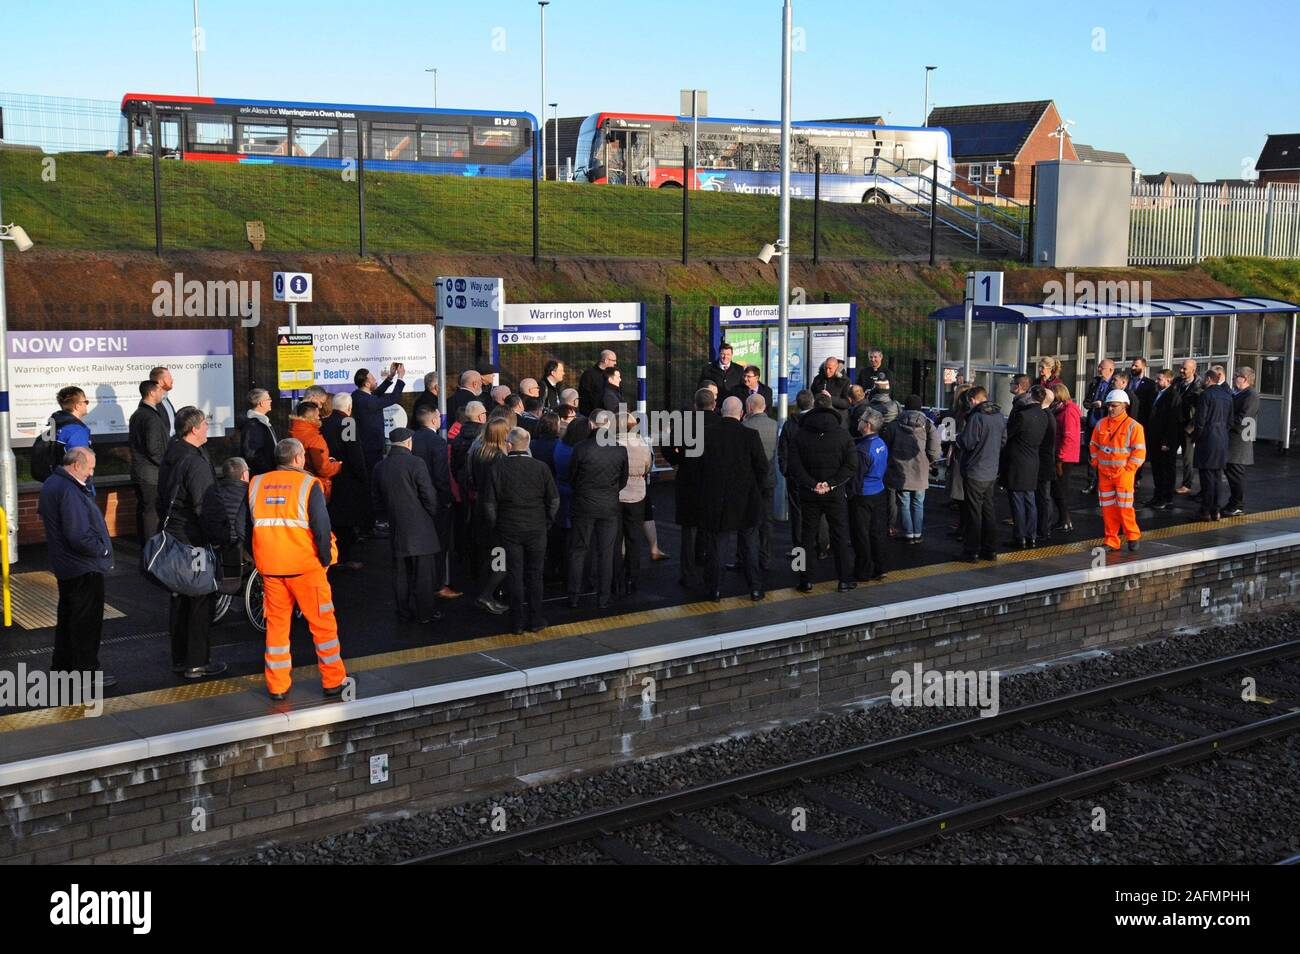 Warrington, Cheshire, UK. 16th Dec, 2019. Council leaders, railway staff and local dignitaries attend the official opening of Warrington West railway station. The £20.5 million station project has been funded by Warrington Borough Council, the Department for Transport, developer contributions and Cheshire and Warrington Local Enterprise Partnership. The station is managed by Northern Trains and will provide vital links for the Chapelford community to Liverpool and Manchester, with 4 trains per hour, a 250 car capacity park and ride and local bus services. Credit: G.P.Essex/Alamy Live News Stock Photo